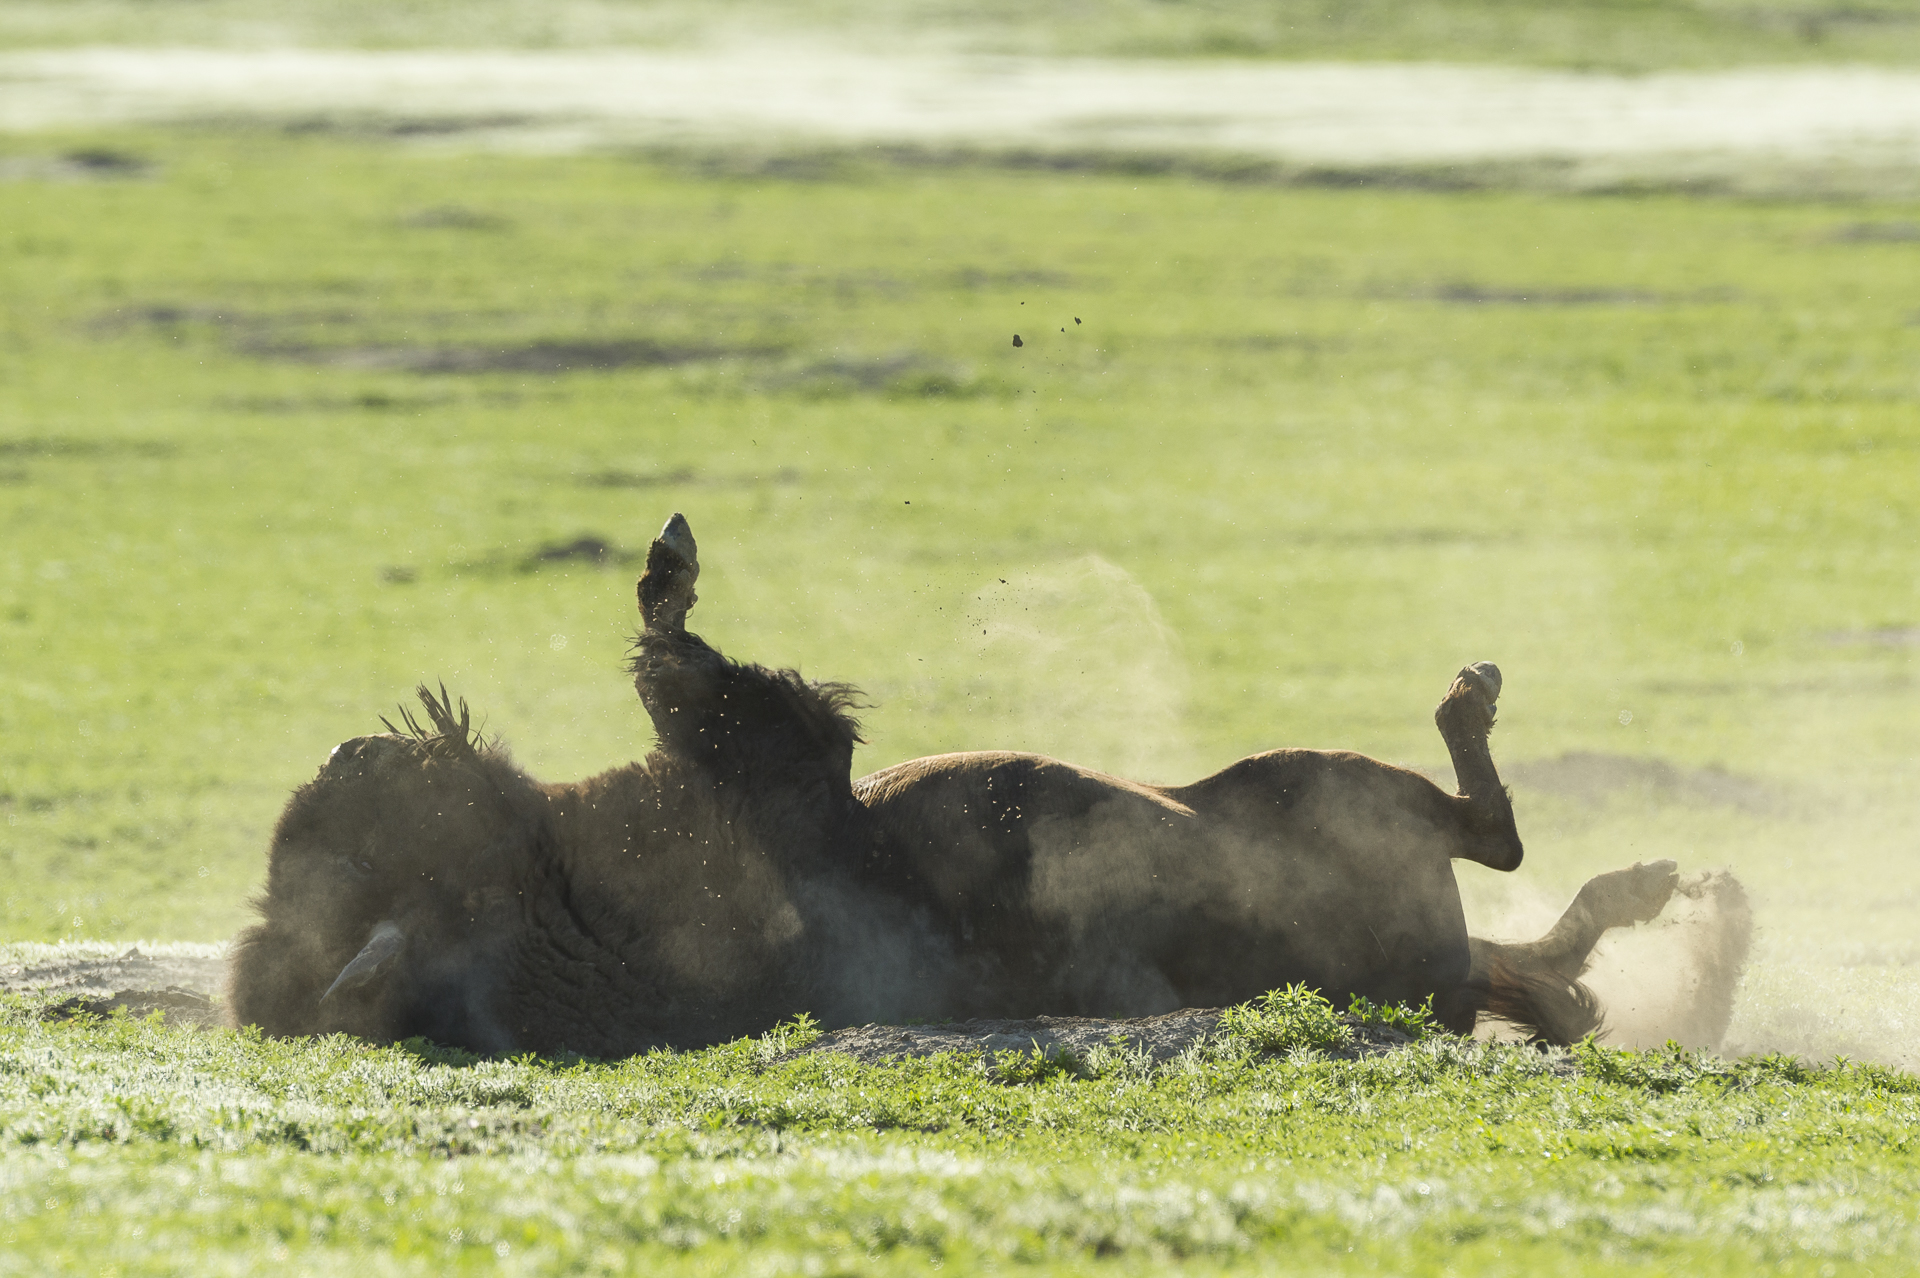 Bull bison dust bathing